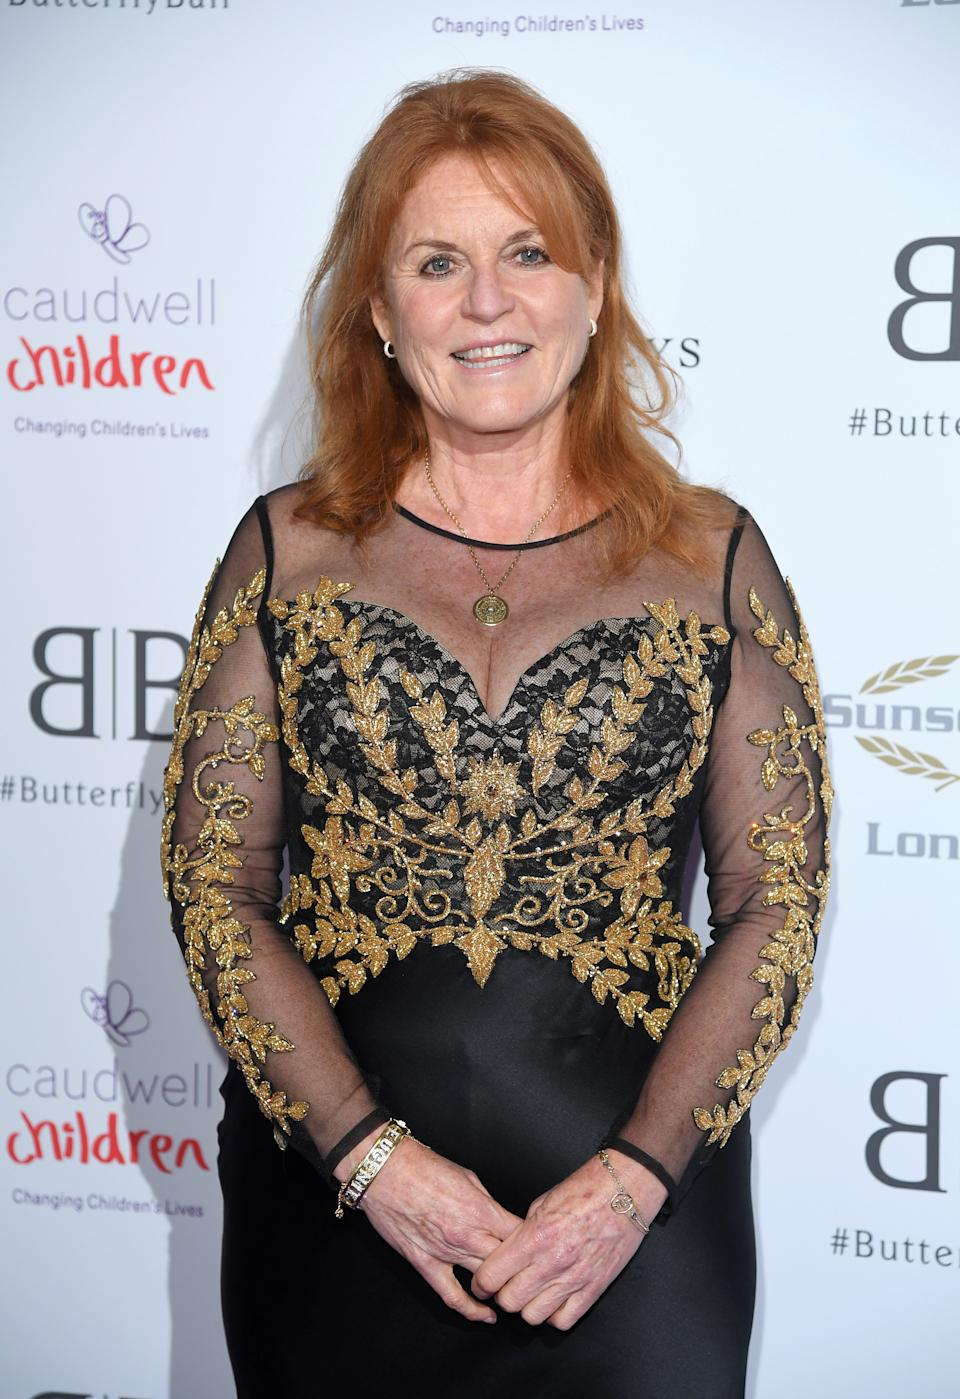 Sarah Ferguson wore a black and gold sheer gown to the Butterfly Ball